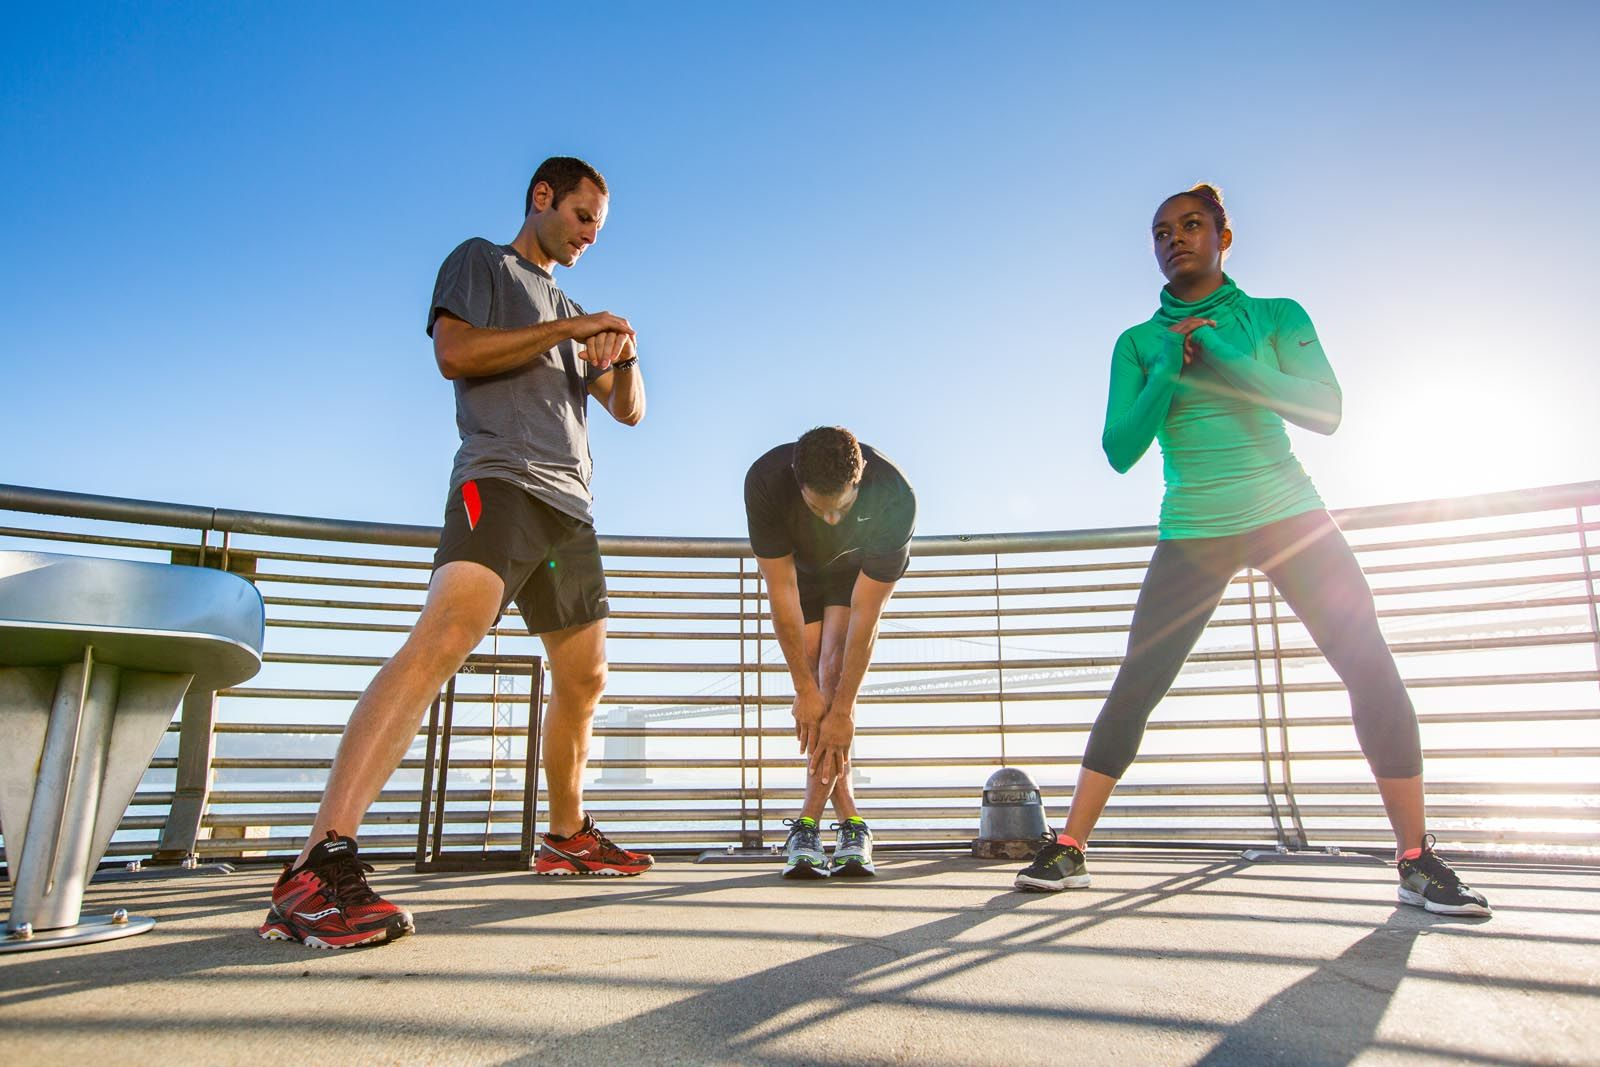 8018aa130a897 It is no secret that runners are a unique group of people. We have quirks  and habits that most people can't seem to understand. If you're a runner, you  can ...